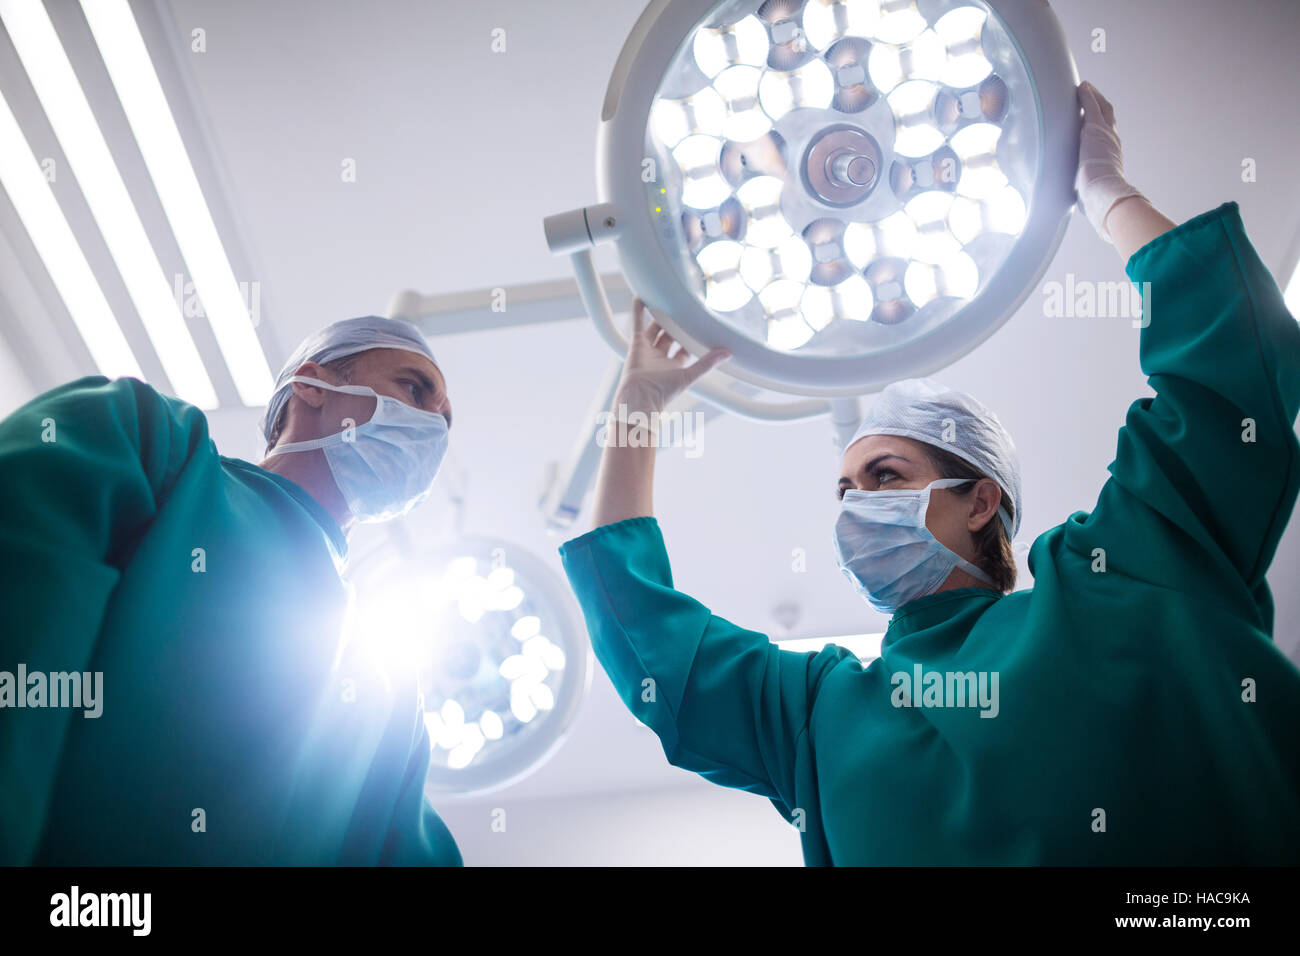 Surgeons using computer monitor in operation room - Stock Image